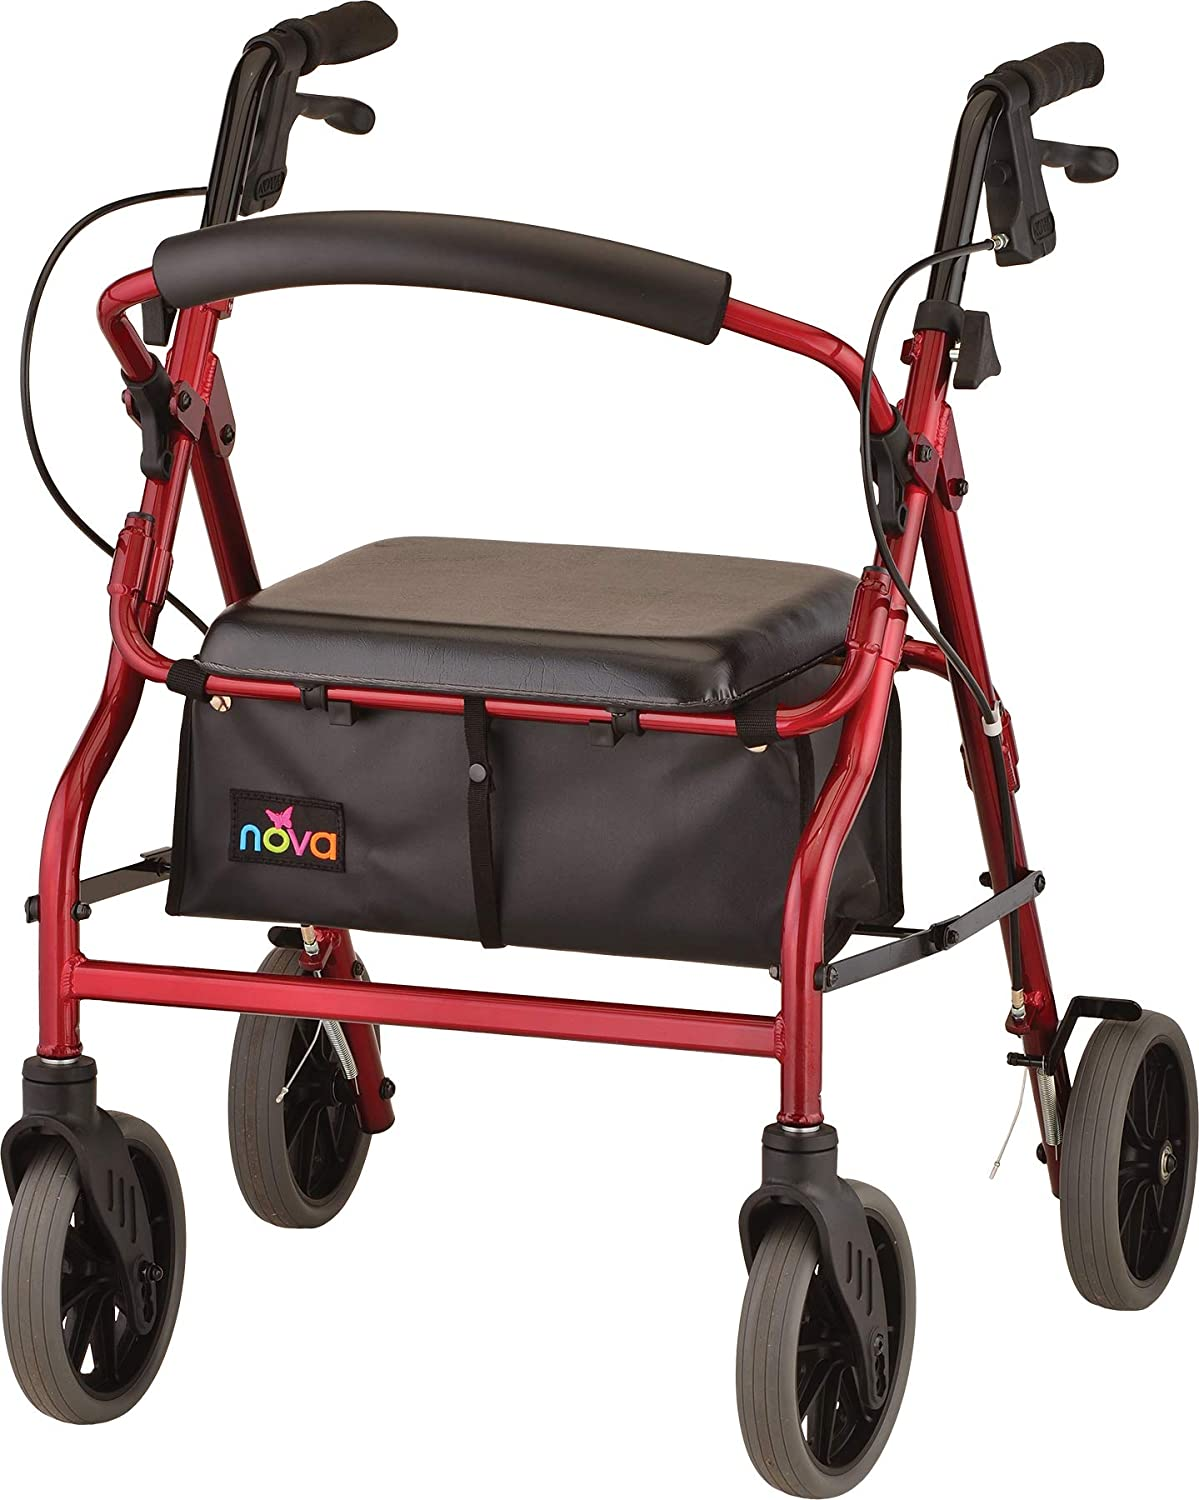 "NOVA Zoom Rollator Walker with 20"" Seat Height, Red: Health & Personal Care"